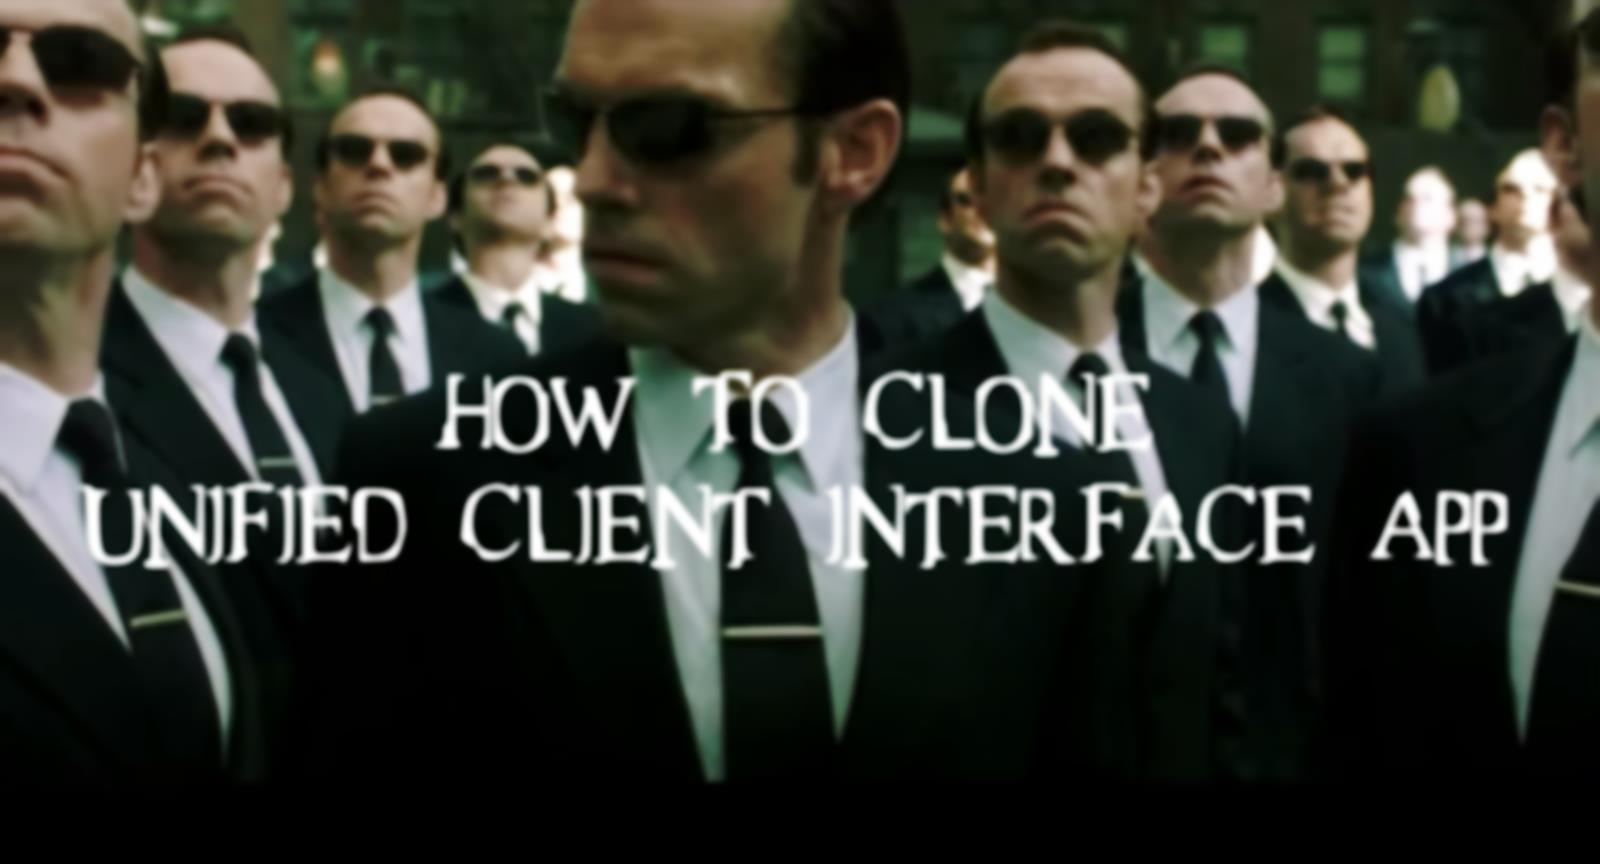 How To - Clone Unified Client Interface App